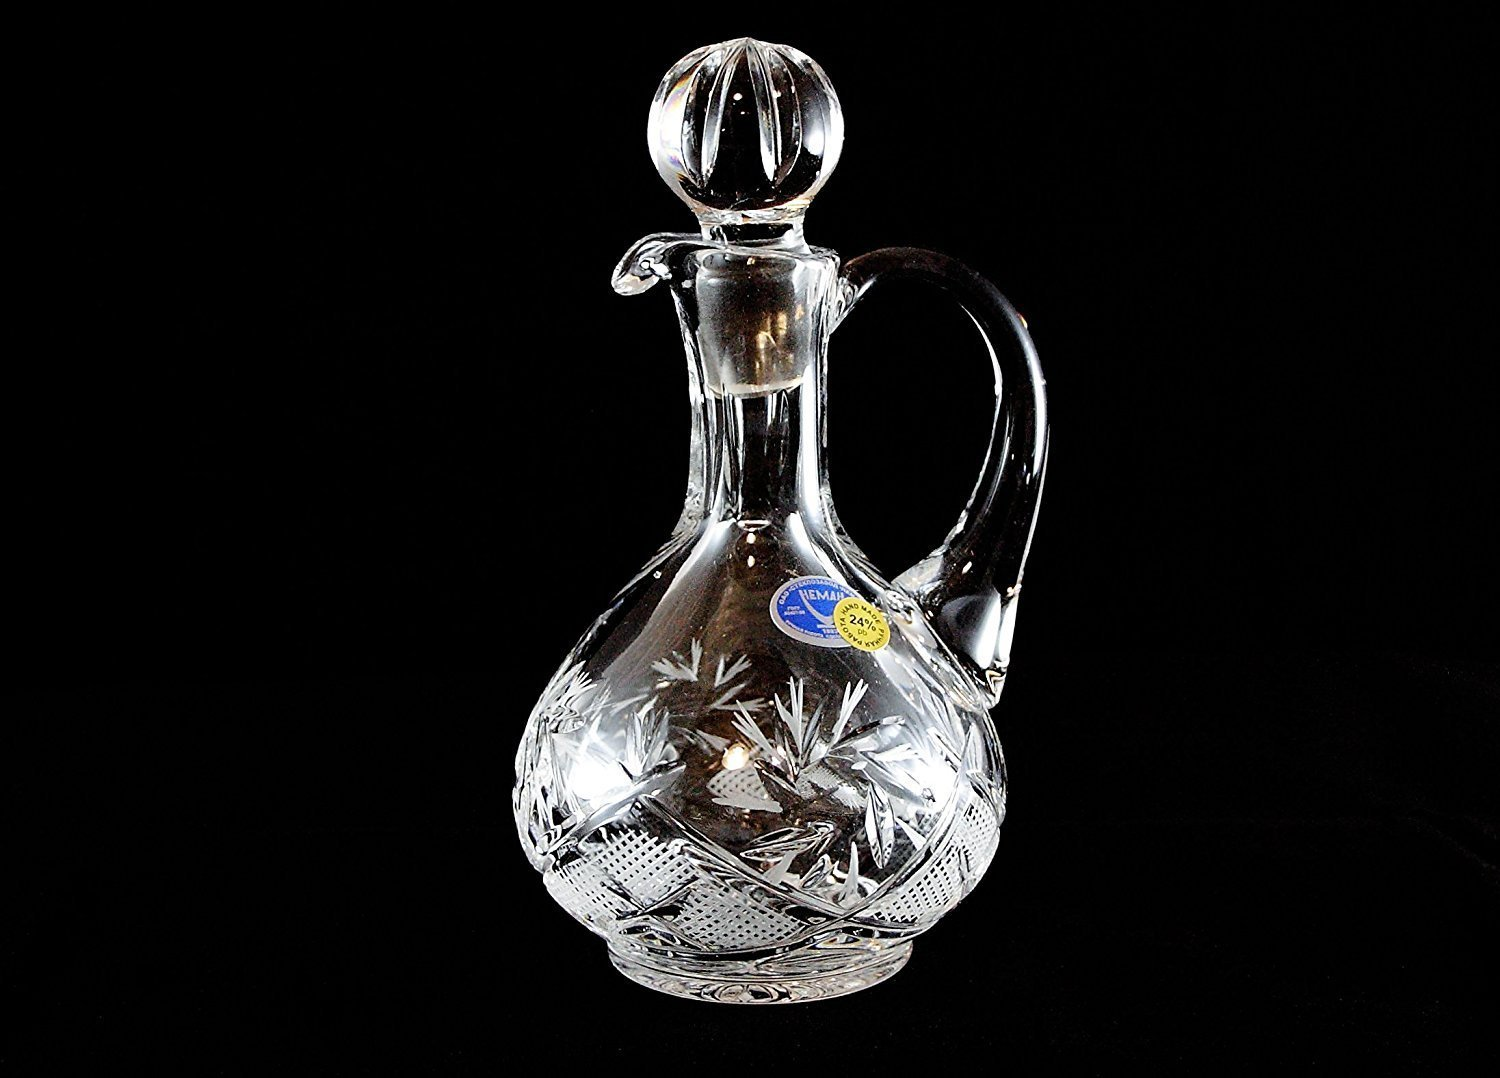 Russian CUT Crystal 5 Oz/150 Ml Carafe/decanter Hand Made by Belarus Neman Crystal COMINHKPR75720